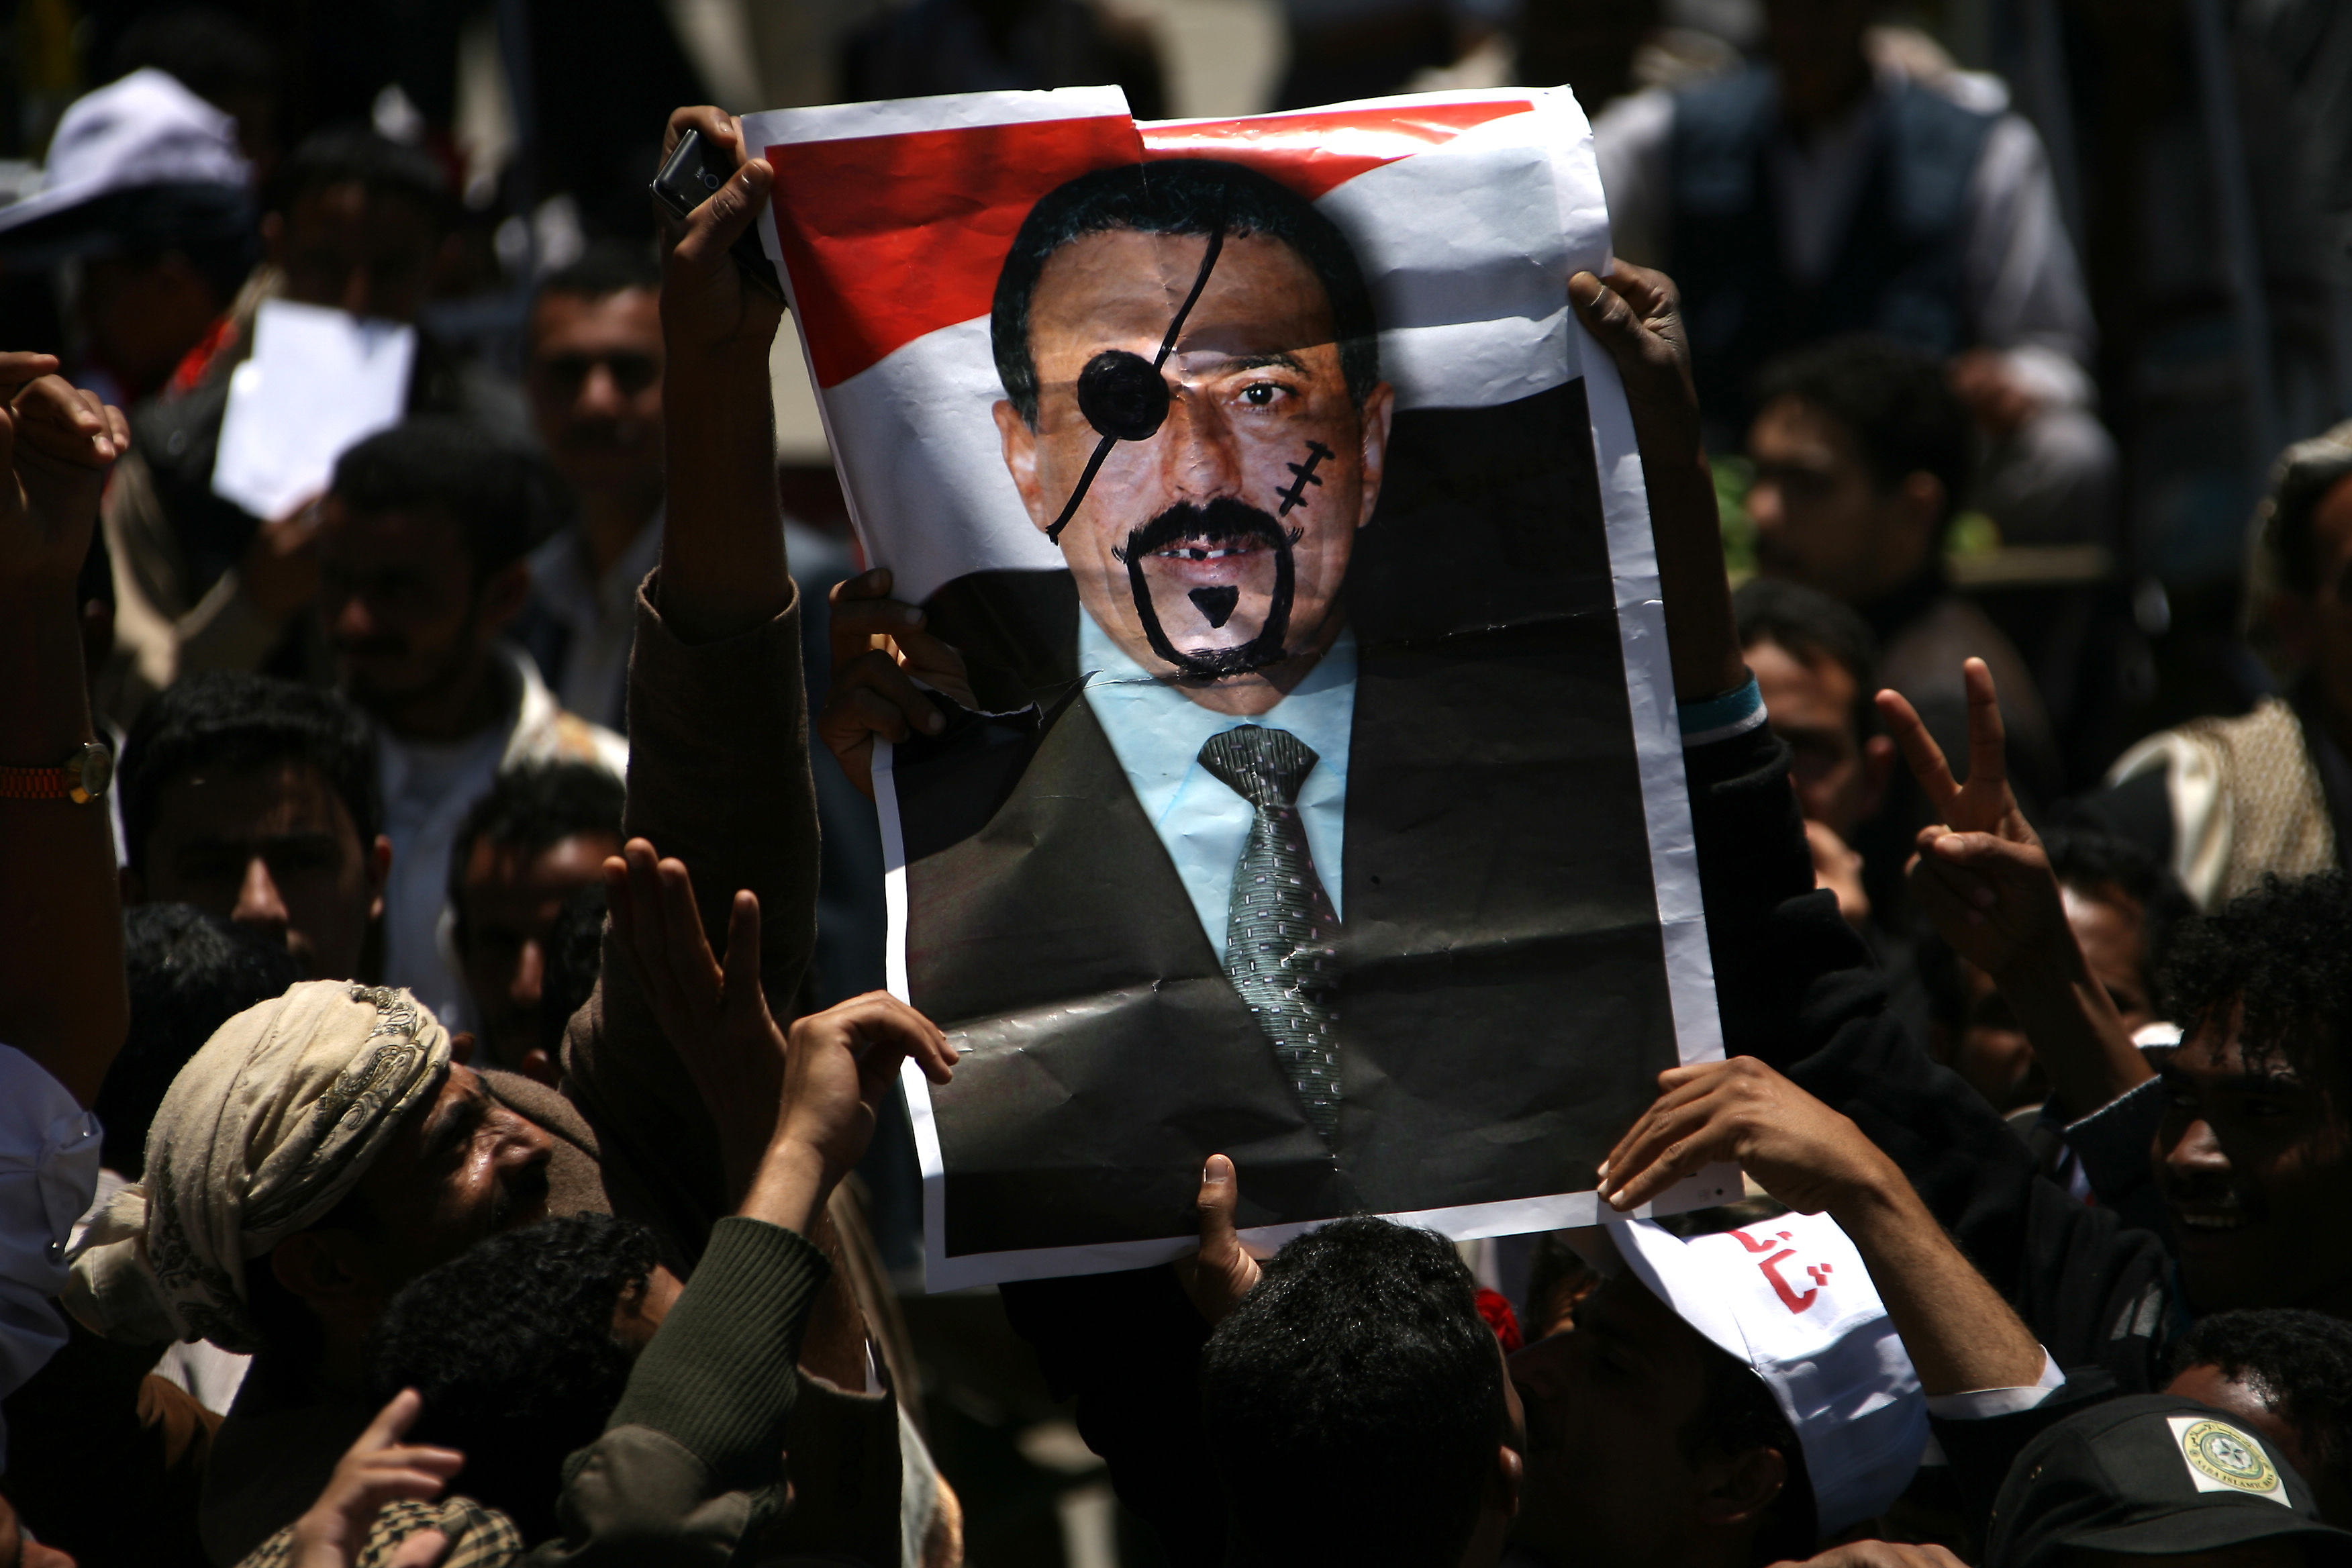 Yemeni anti-government protesters hold a picture of President Ali Abdullah Saleh depicting him as a pirate during a demonstration calling for his ouster in Sanaa.